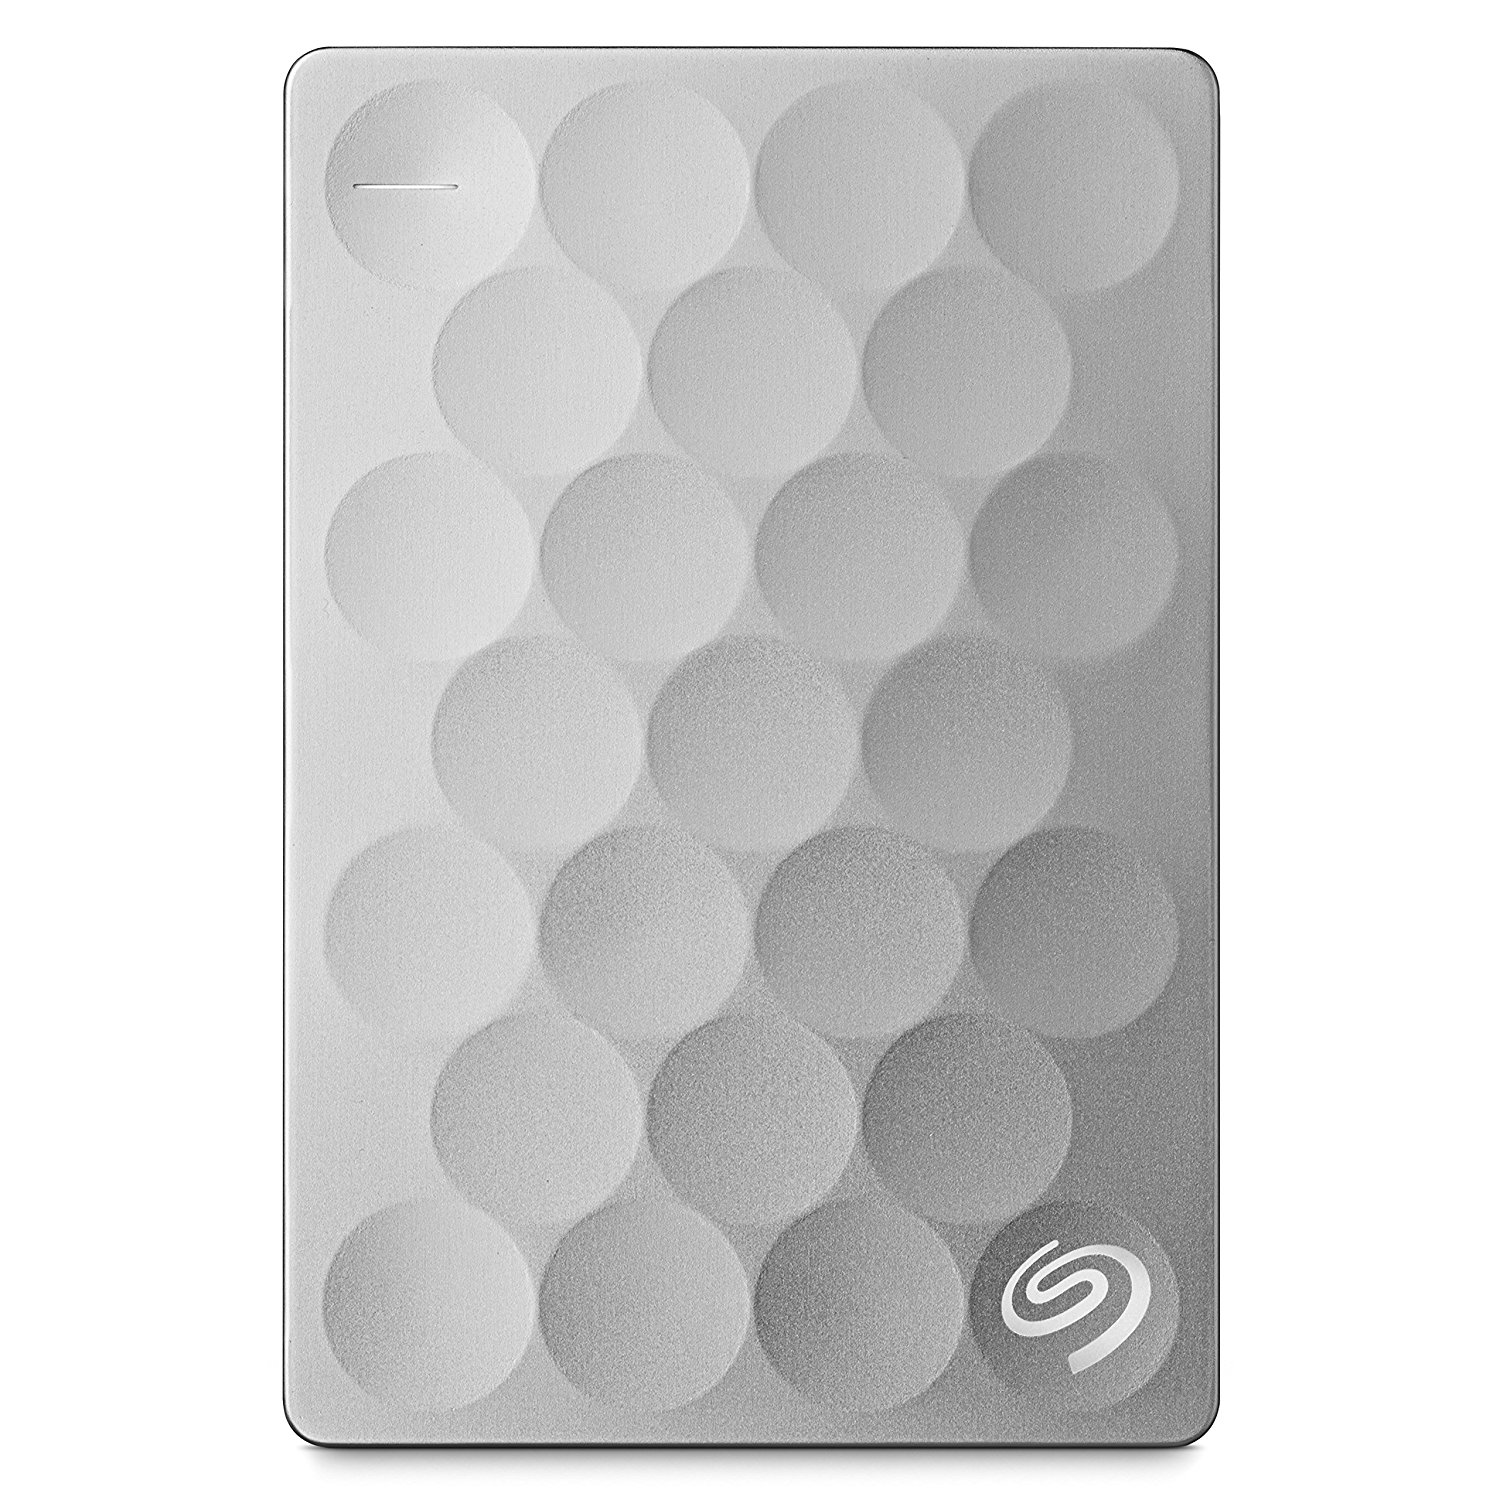 [State Bank send package] Seagate mobile hard disk 2tb slim slim9.6mmusb3.0 high-speed 2t mobile disk